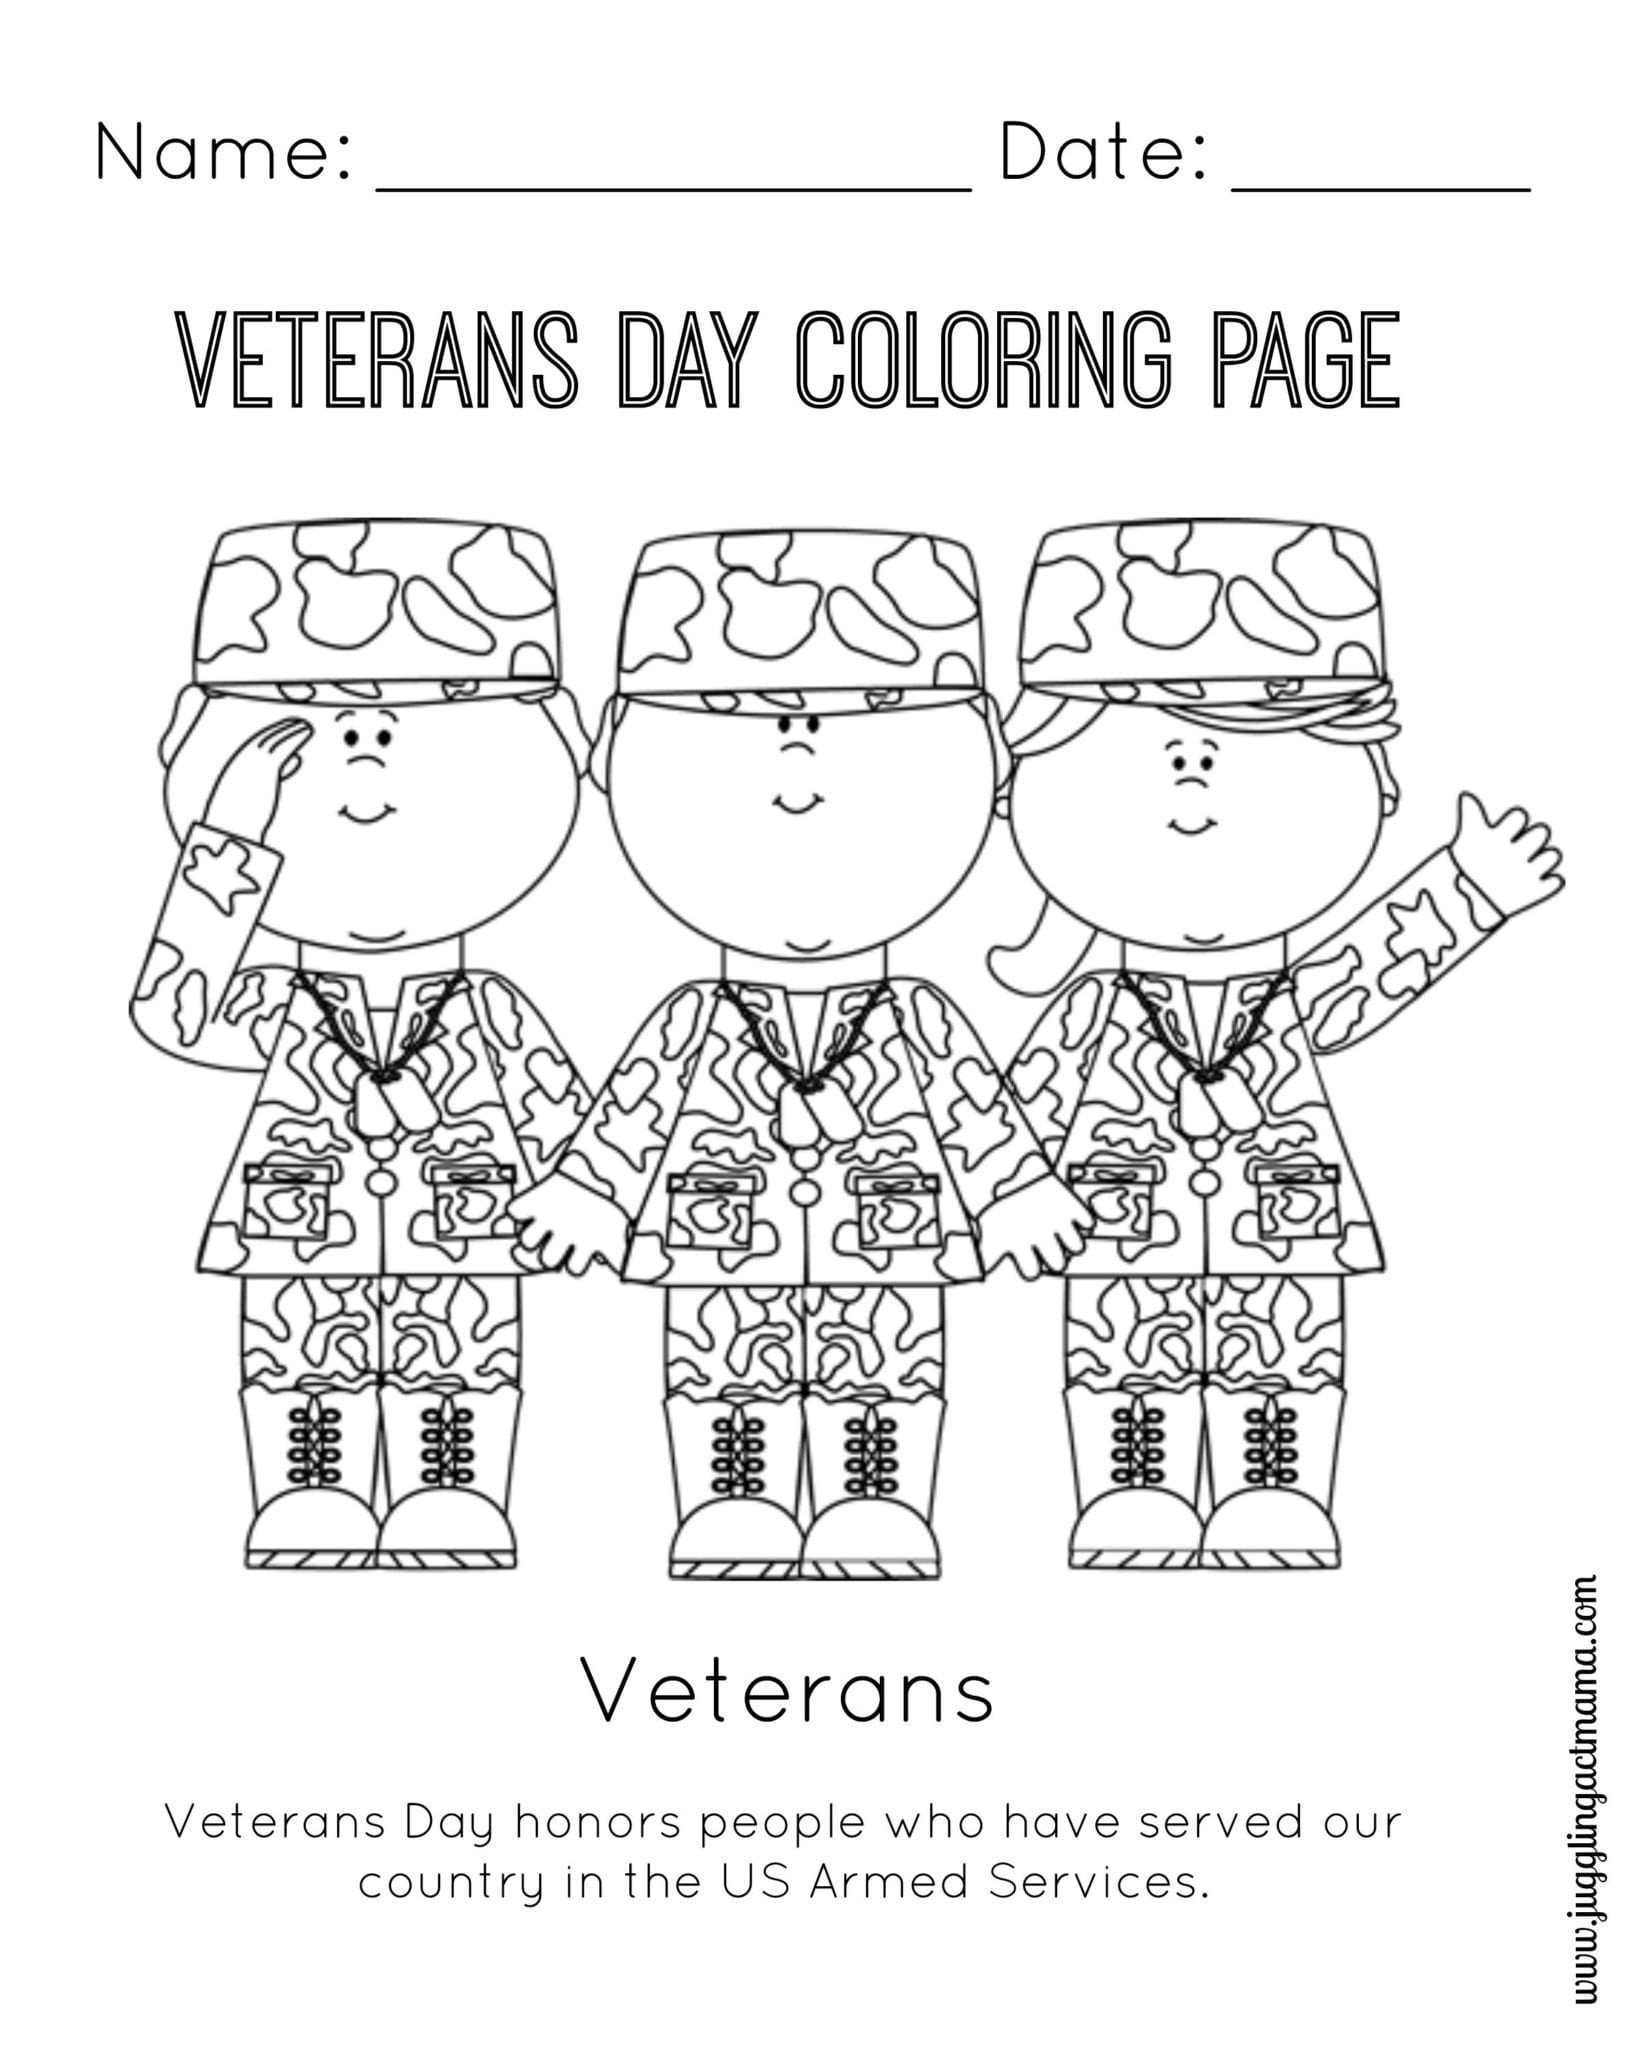 Veterans Day Worksheets for Kindergarten Veterans Activities for Kindergarten Worksheets Printable